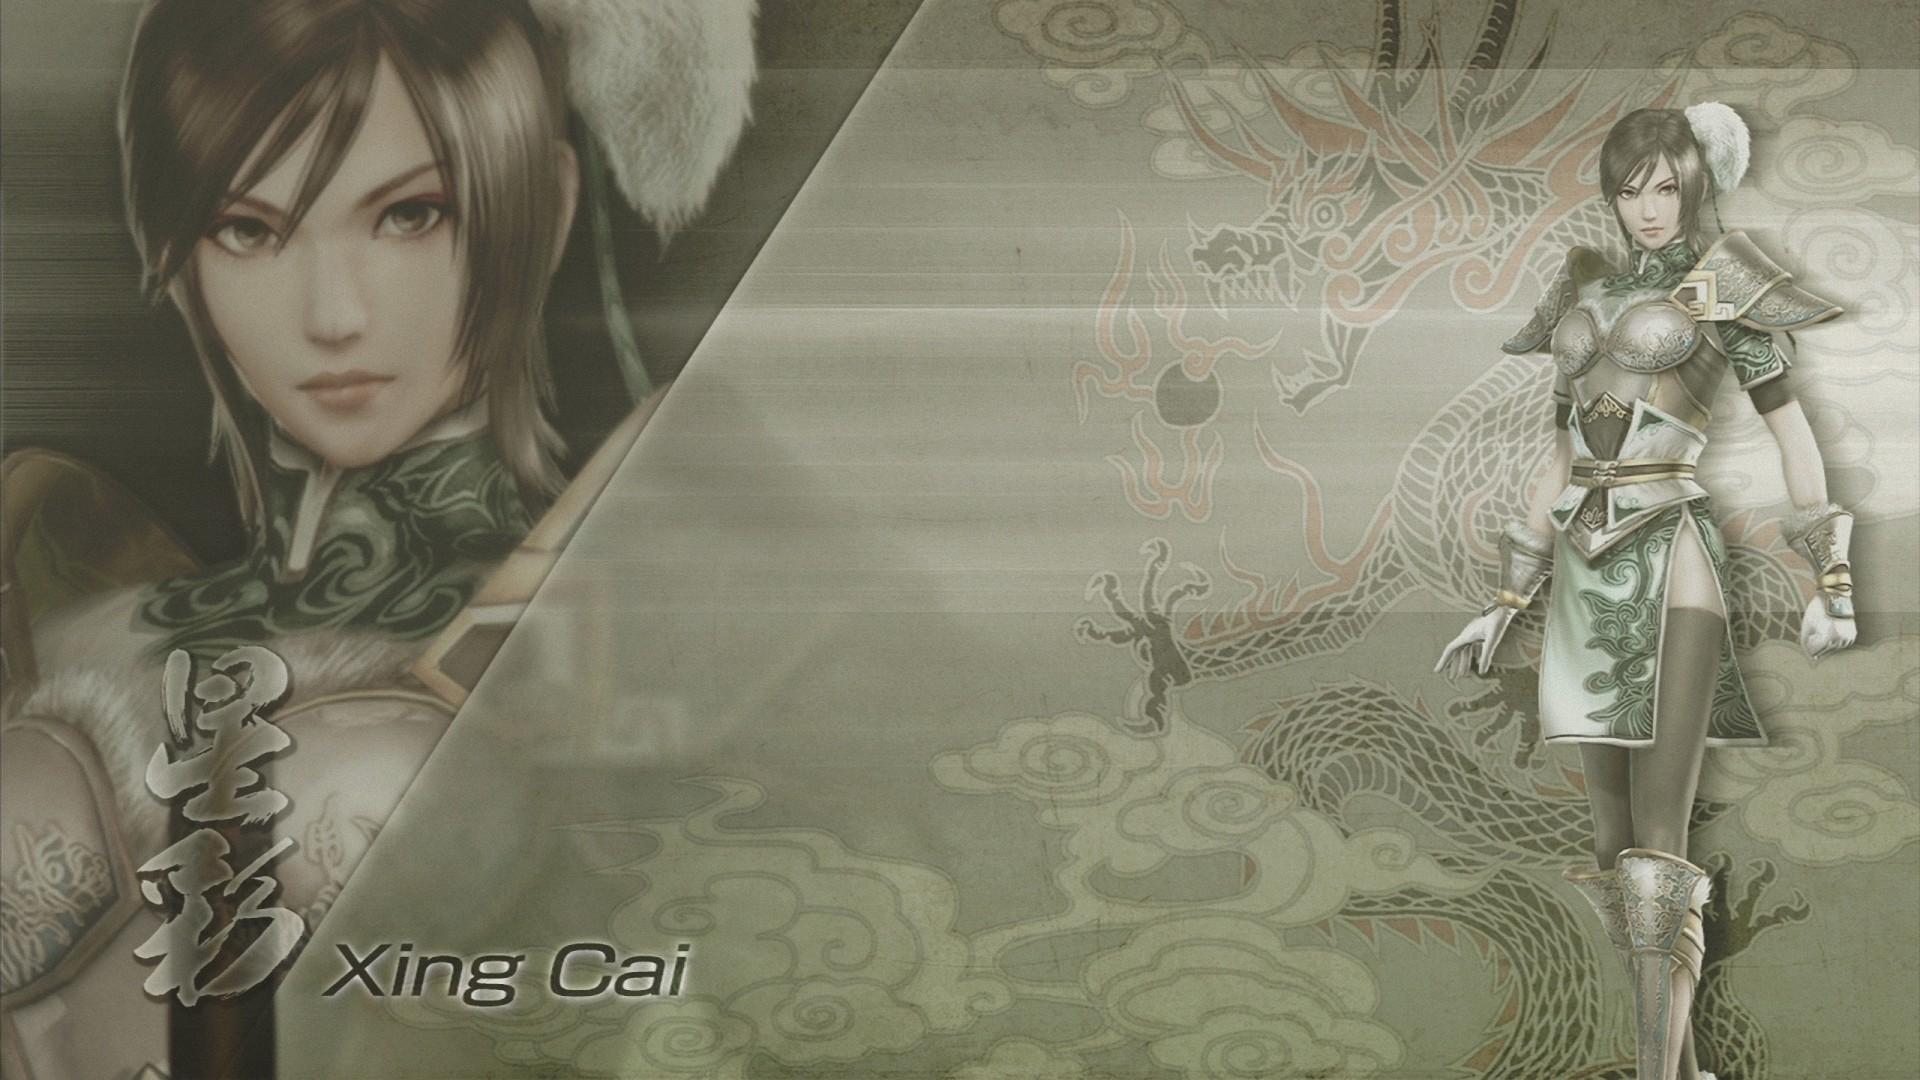 1920x1080 DW7 - Xing Cai by DynastyWarriors7 DW7 - Xing Cai by DynastyWarriors7